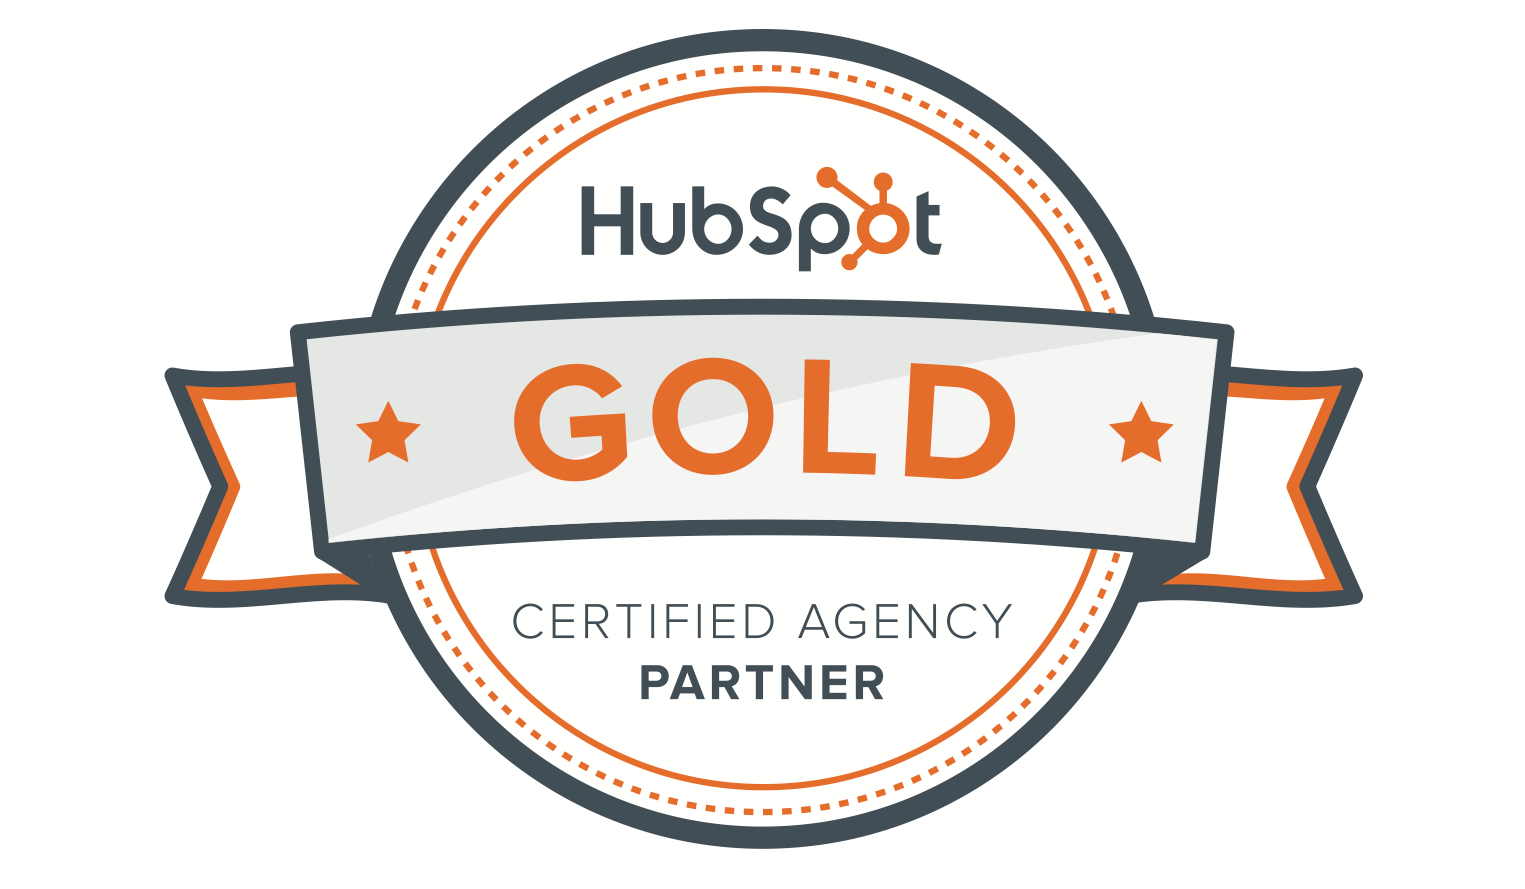 Gold_Badge-2-657466-edited.png